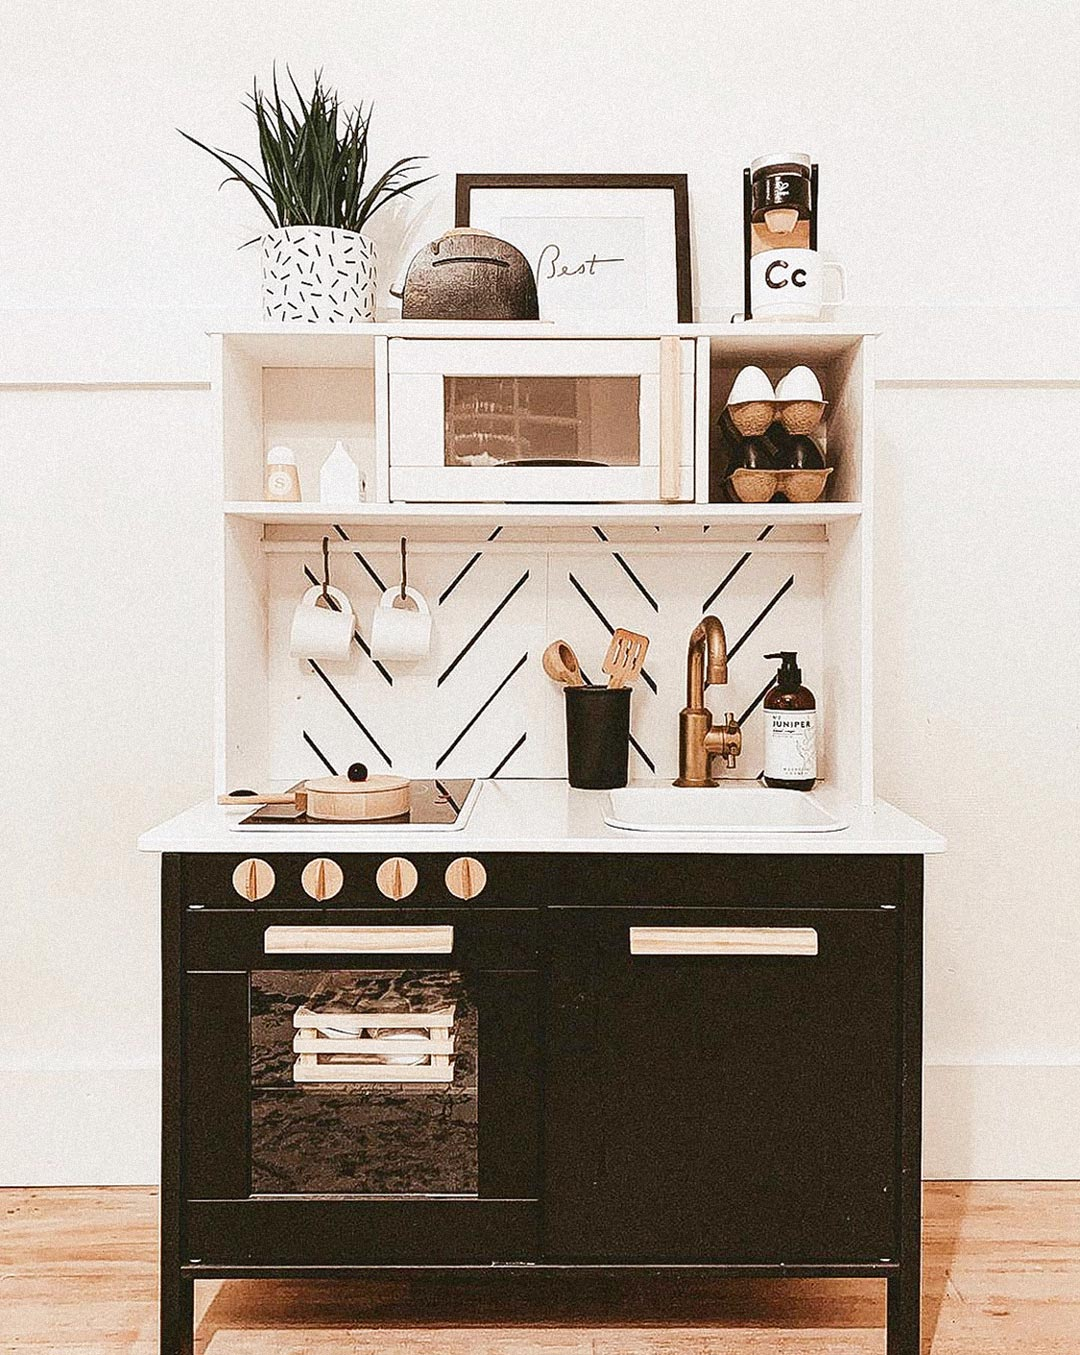 IKEA play kitchen DIY with modern herringbone removable wallpaper backsplash and black and brass kitchen hardware and decor